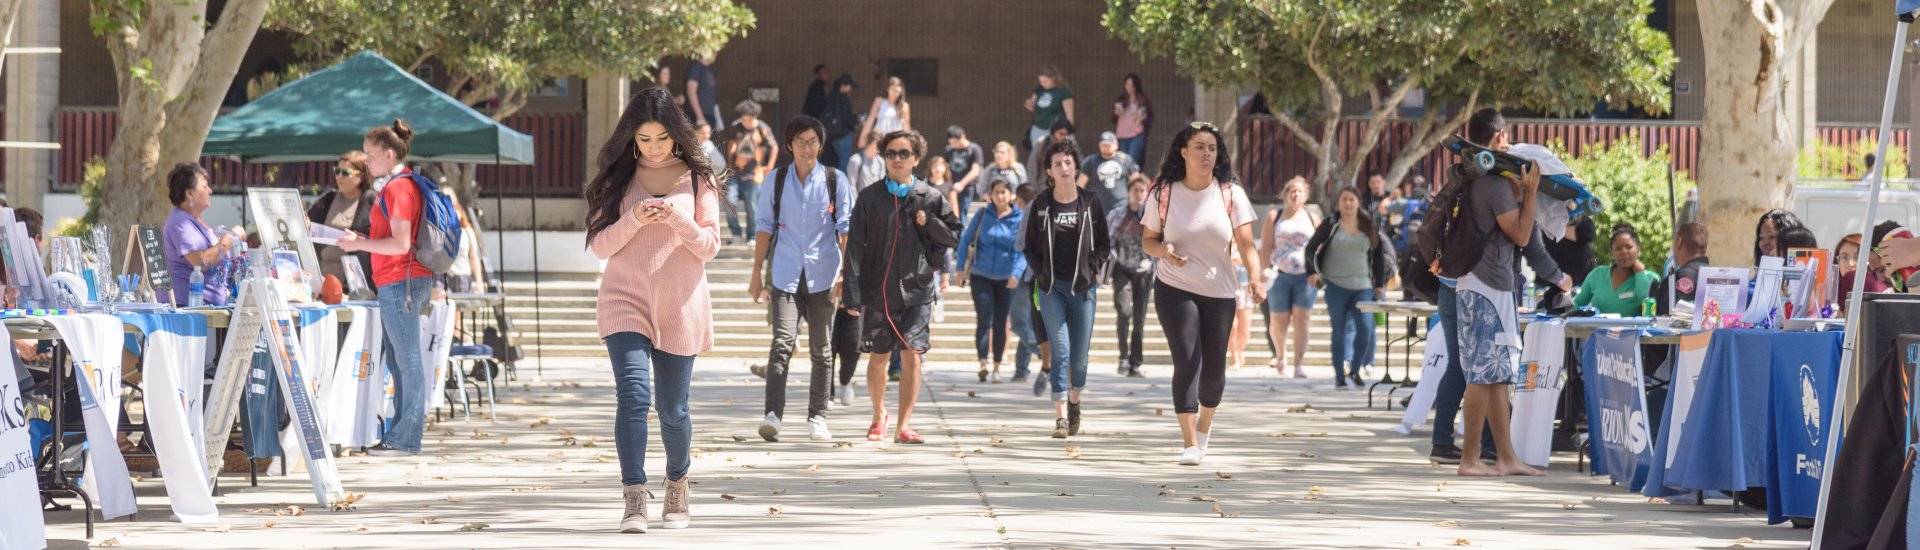 students walking down the Campus Center Mall from the Lecture Hall